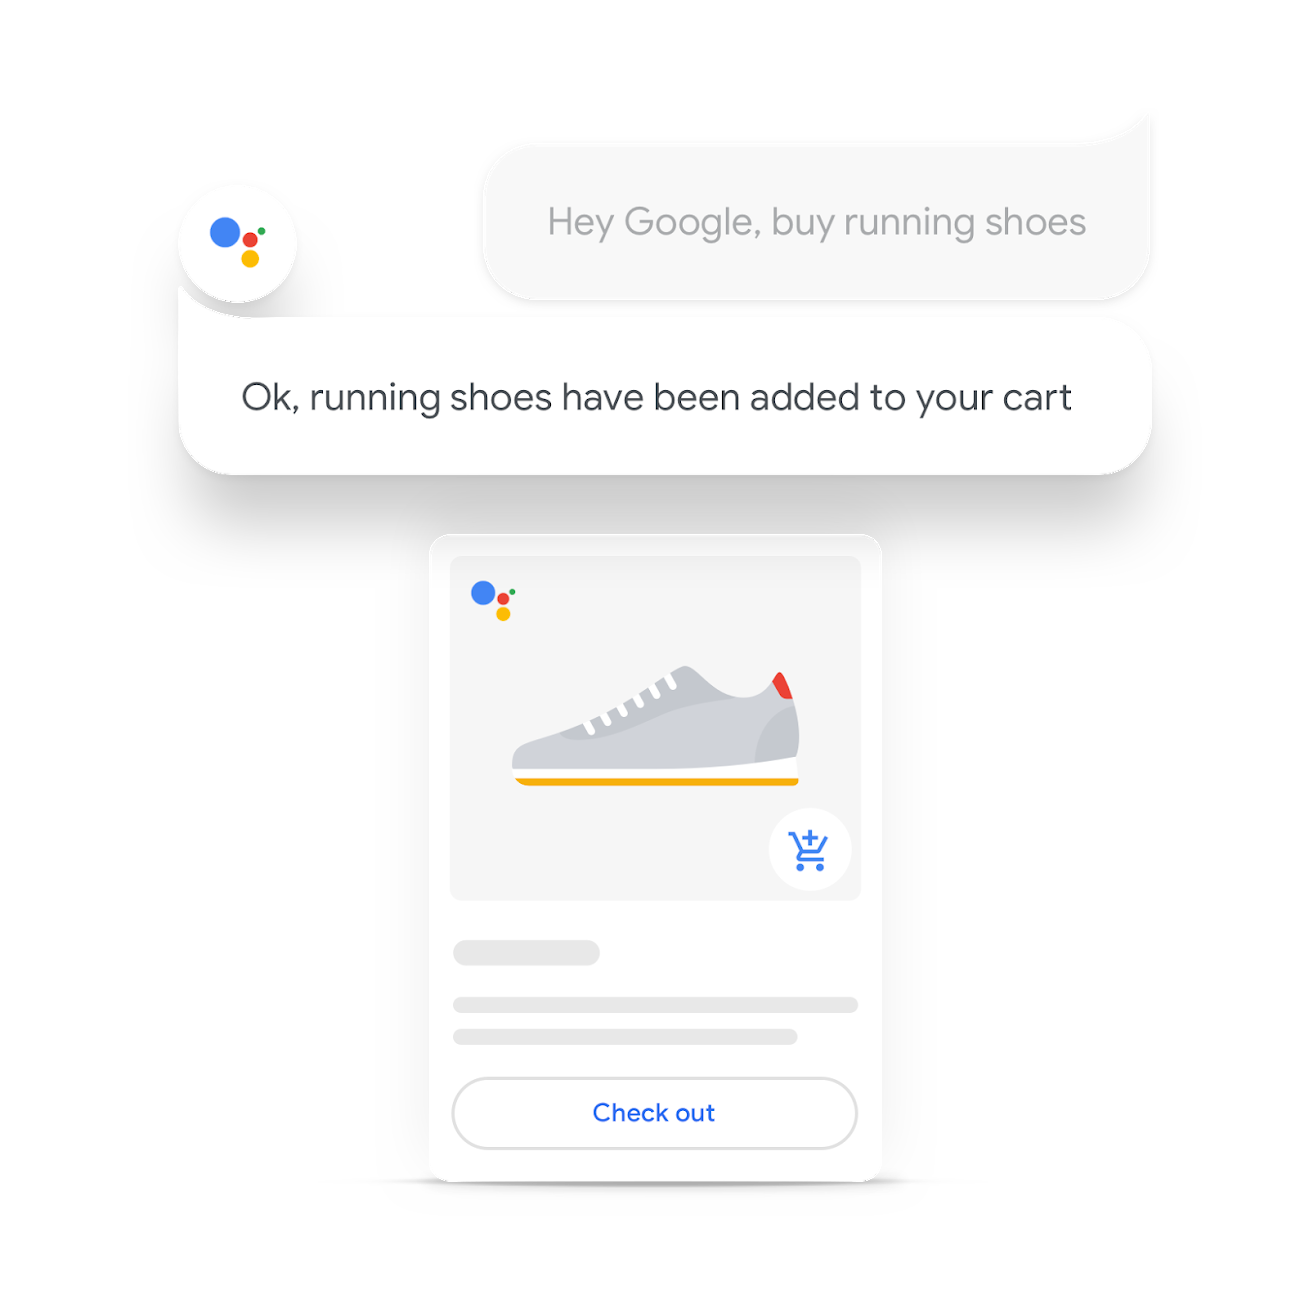 Voice Search Optimization for Small Businesses: Google Shopping Actions